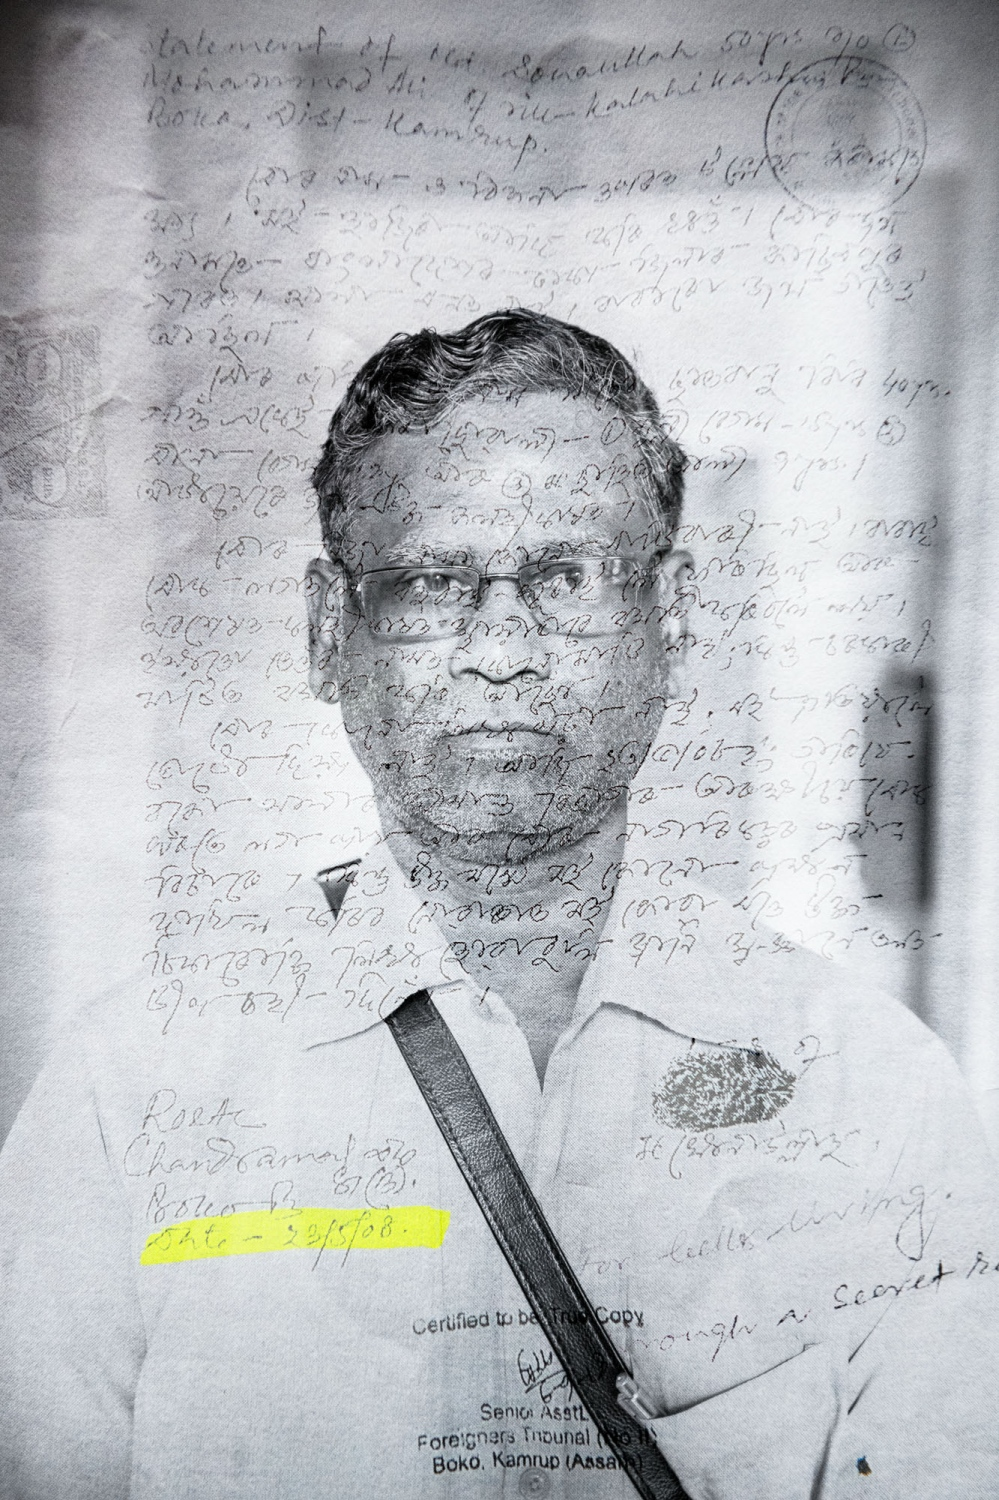 "MD. Sanaullah, honorary captain, served in the Indian Army from 1987 to 2017, before retiring. When the NRC list came out he found that he had an ongoing case in the Foreigners Tribunal. He was unaware of the case, which accused him of being an illegal immigrant. The Tribunal had received a falsified confession from someone claiming to be MD Sanaullah, but signed and dated at a time when he was stationed in Manipur with the Army. The document states that he came to India ""looking for a better life"" and entered the country ""through secret roads"". His father was a freedom fighter and has land documents from 1943."